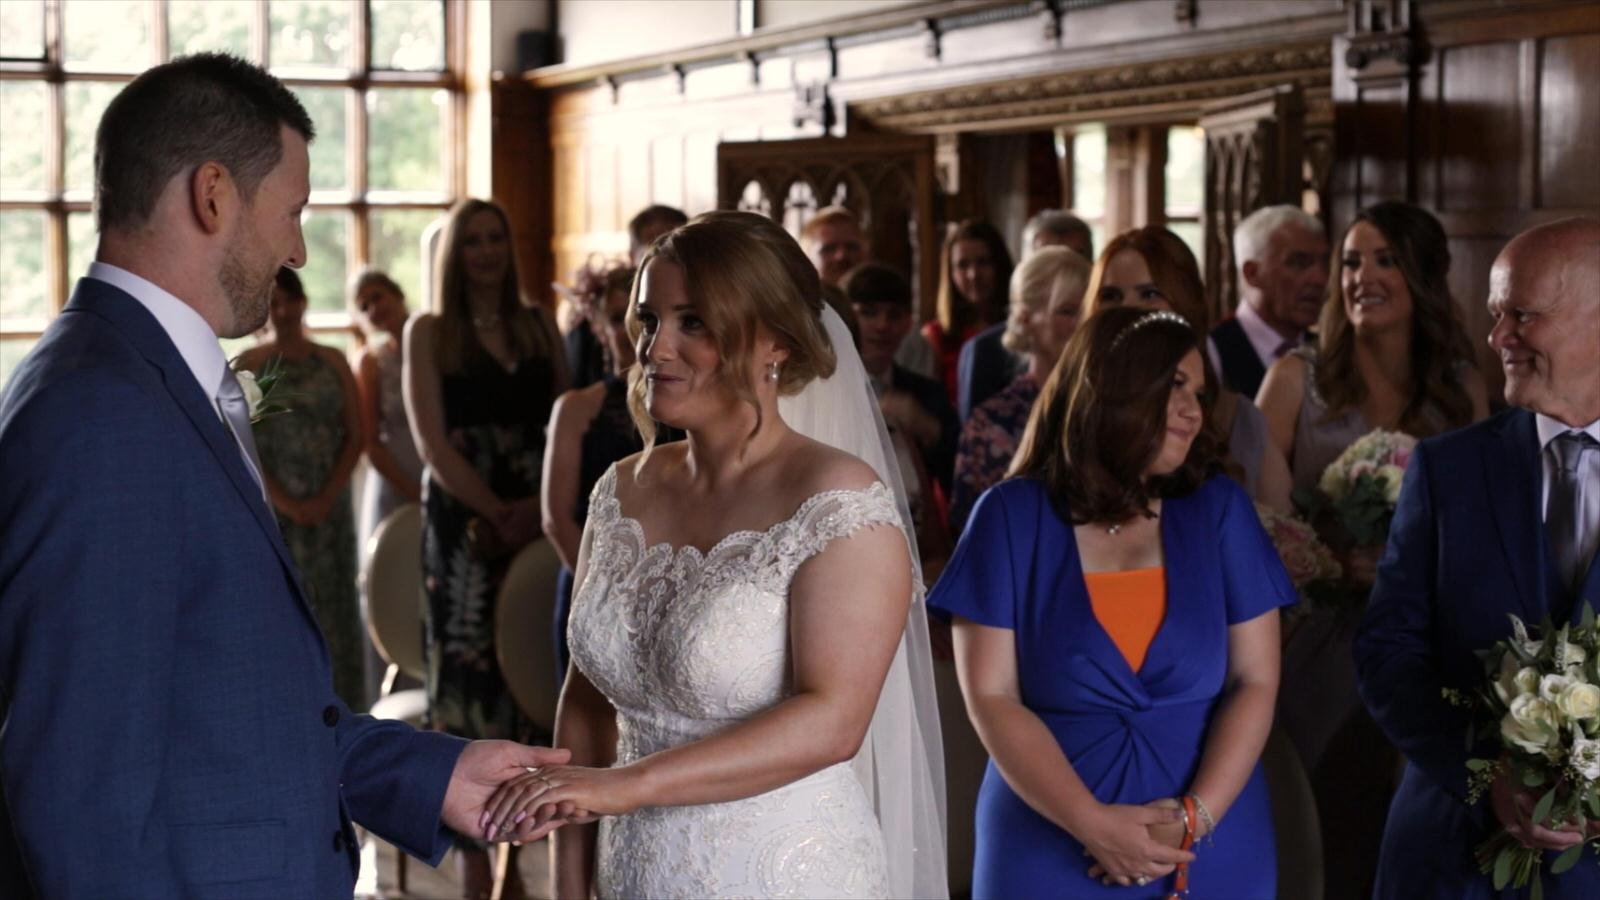 video still of couple exchanging wedding rings at hillbark hotel